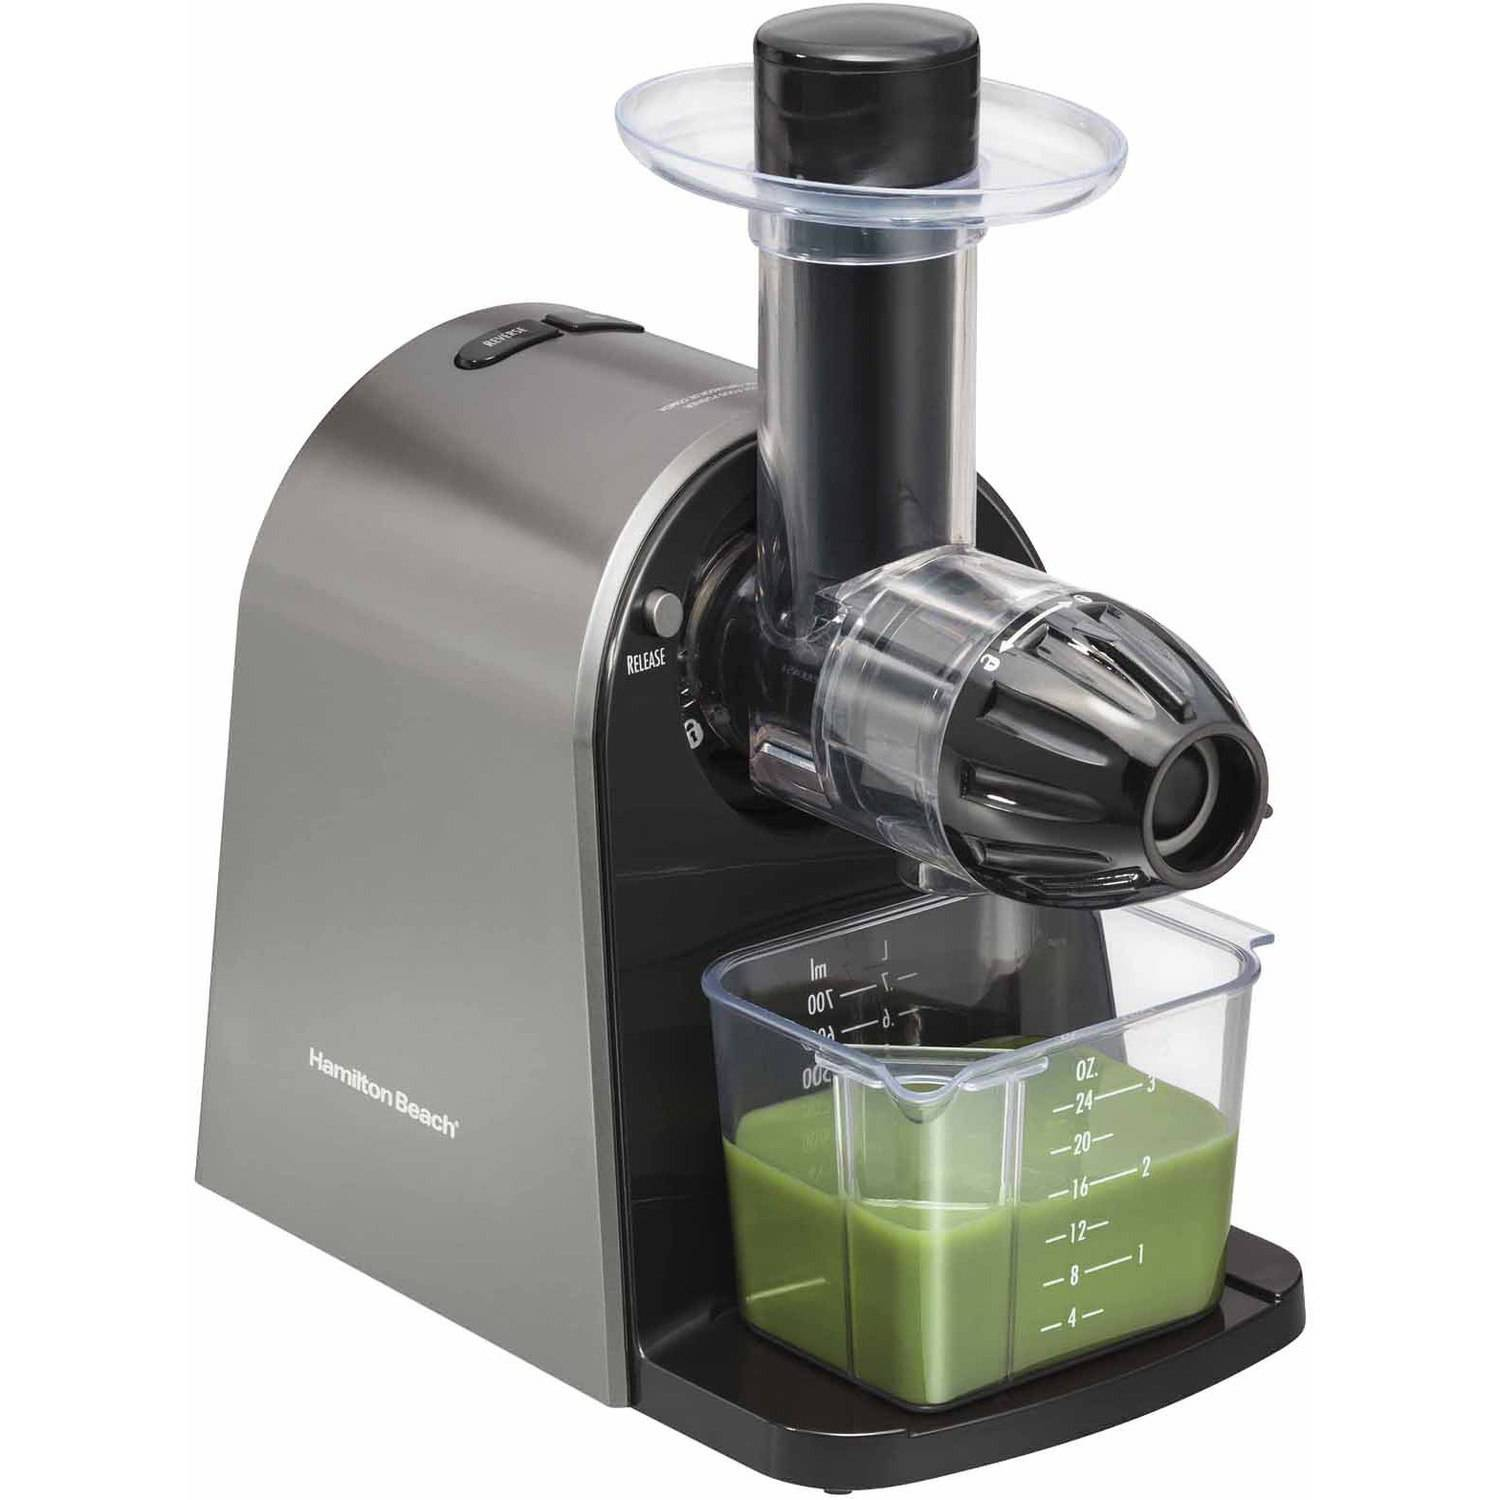 Hanabishi Slow Juicer Review : Cold Press Juicer Machine - Masticating Juicer Slow Juice Extractor Maker Electric Juicing ...